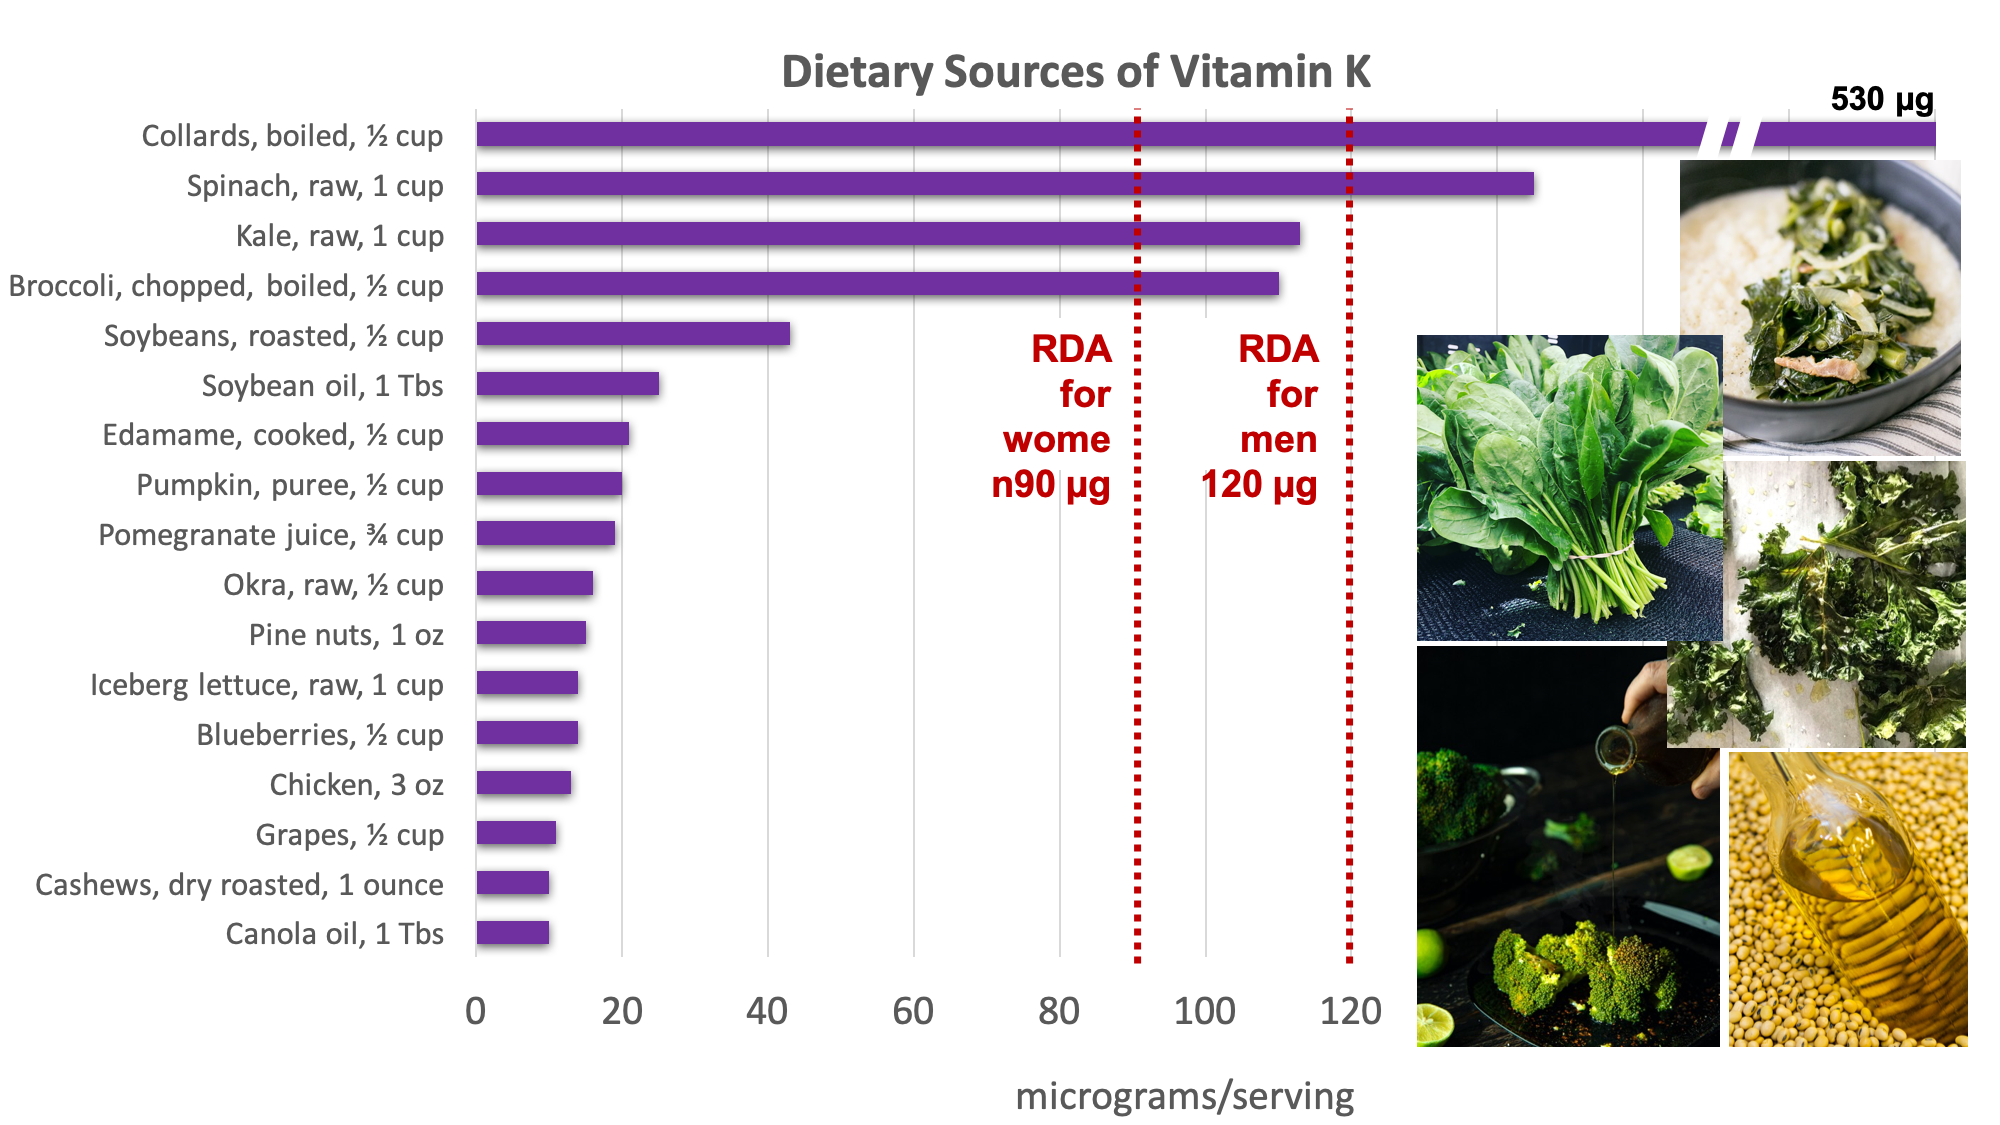 Bar graph showing dietary sources of vitamin K compared with the RDA for adult women of 90 micrograms and for men of 120 micrograms. Top sources include dark leafy green, broccoli, soybeans, vegetable oils, edamame, pumpkin, pomegranate juice, nuts, some fruits. Sources pictured include collards, spinach, kale, broccoli, and vegetable oils.